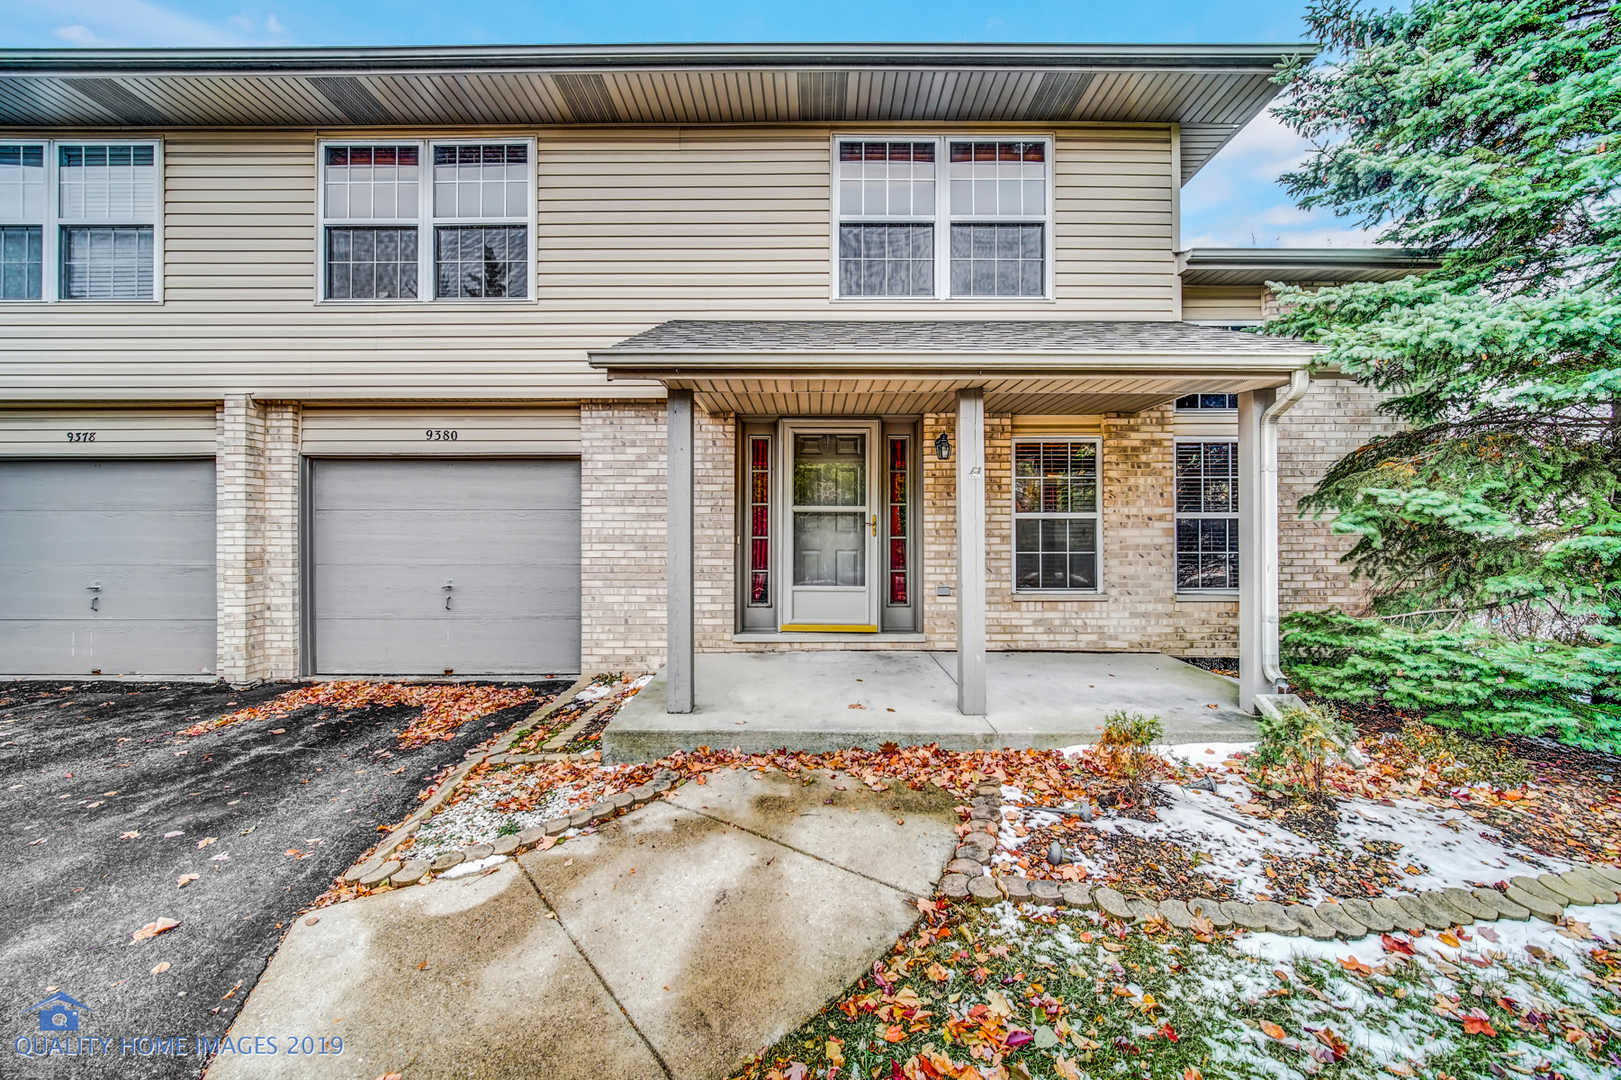 9380 Meadowview Drive, Orland Hills, Illinois